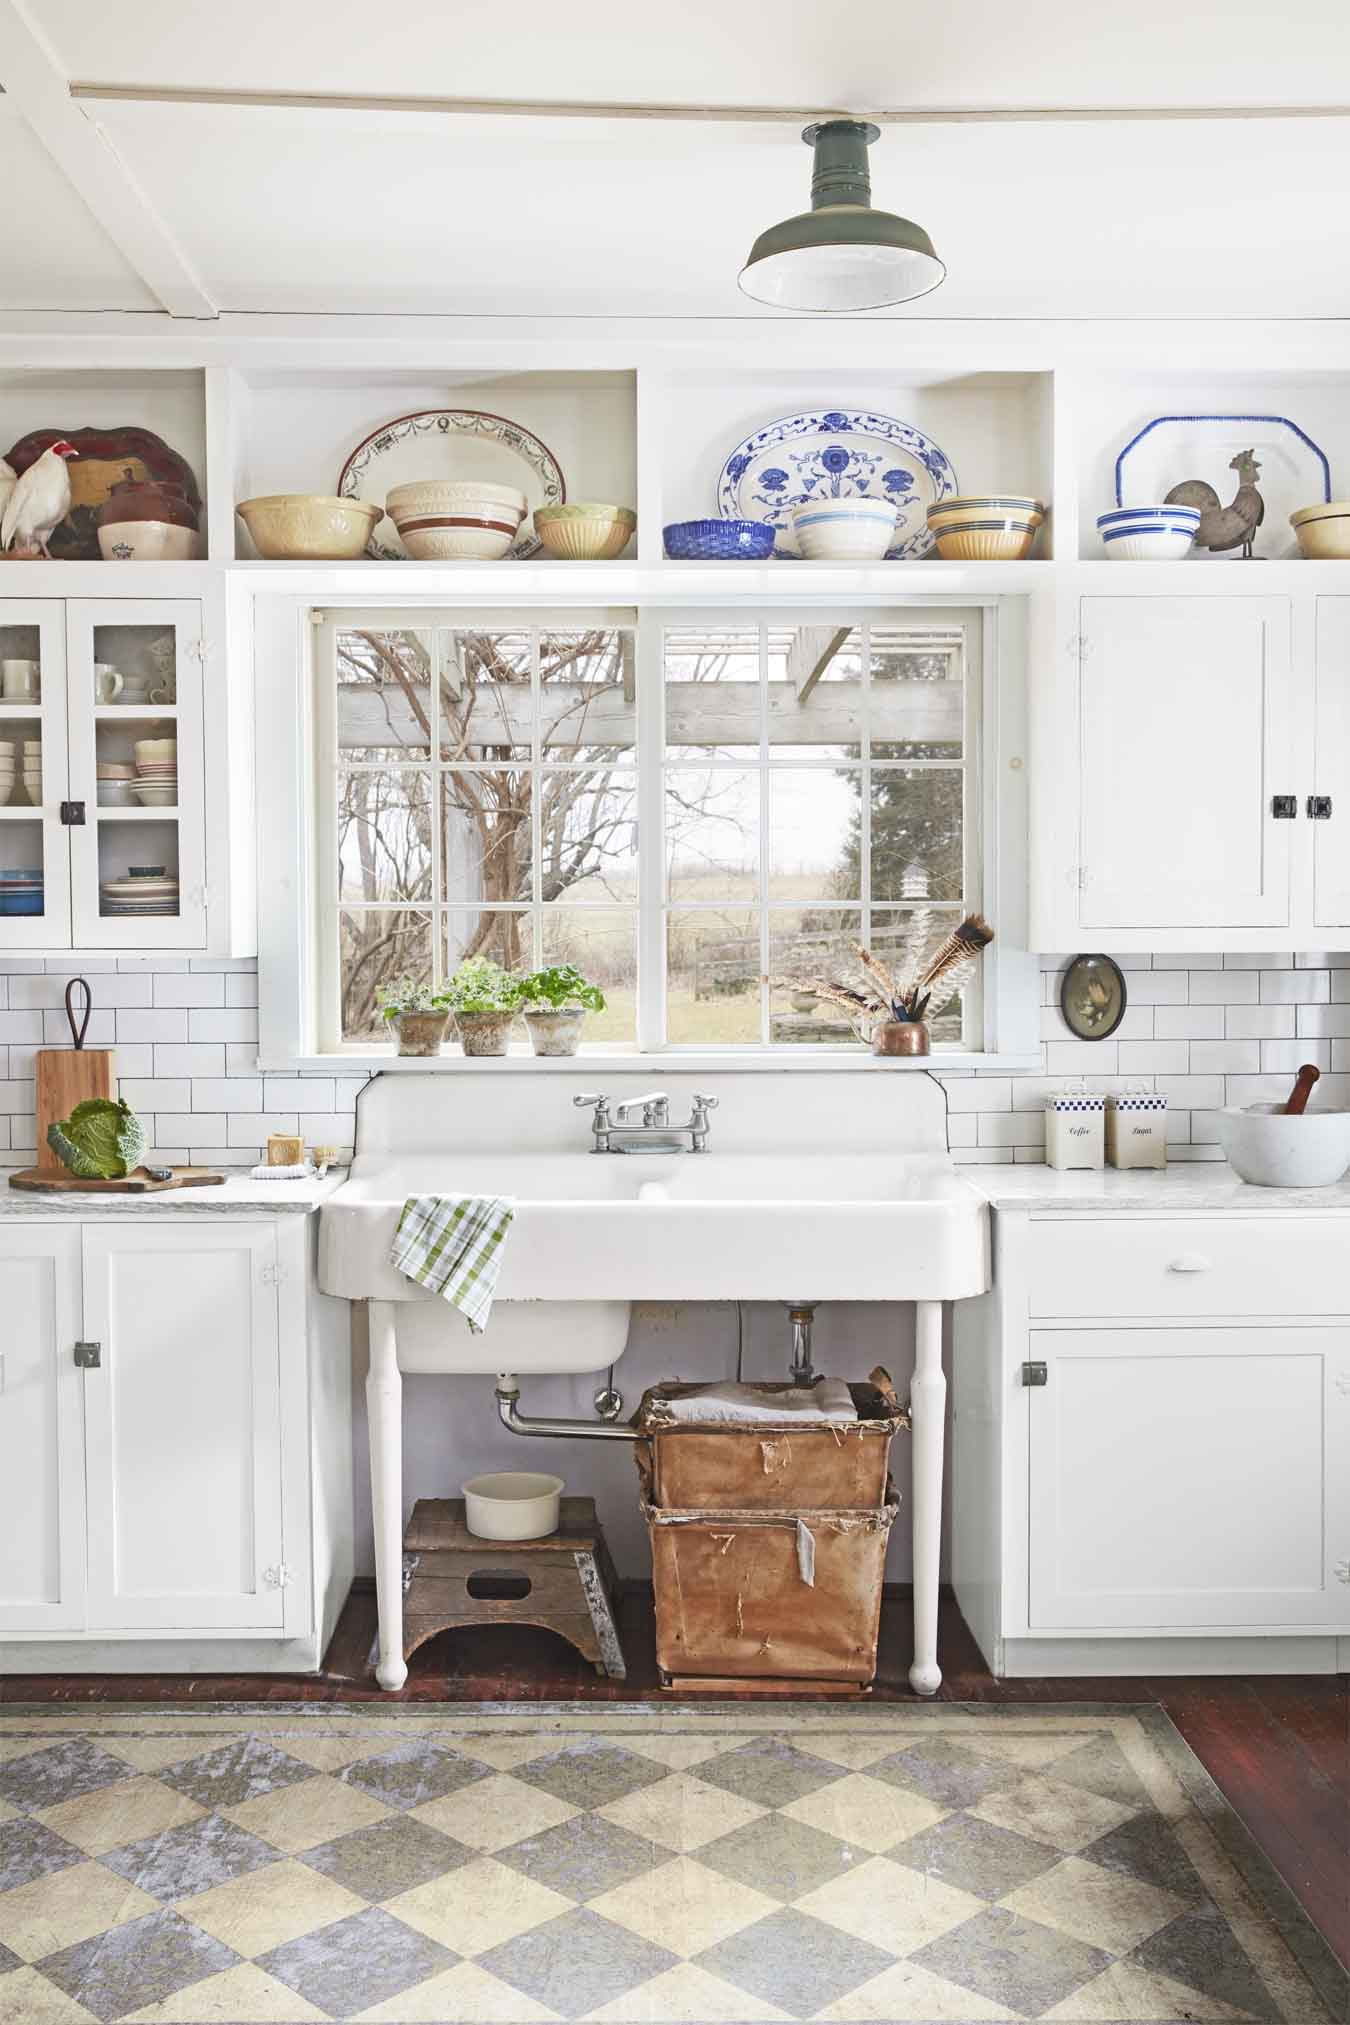 vintage kitchen furniture 20 vintage kitchen decorating ideas design inspiration for retro kitchens 7904